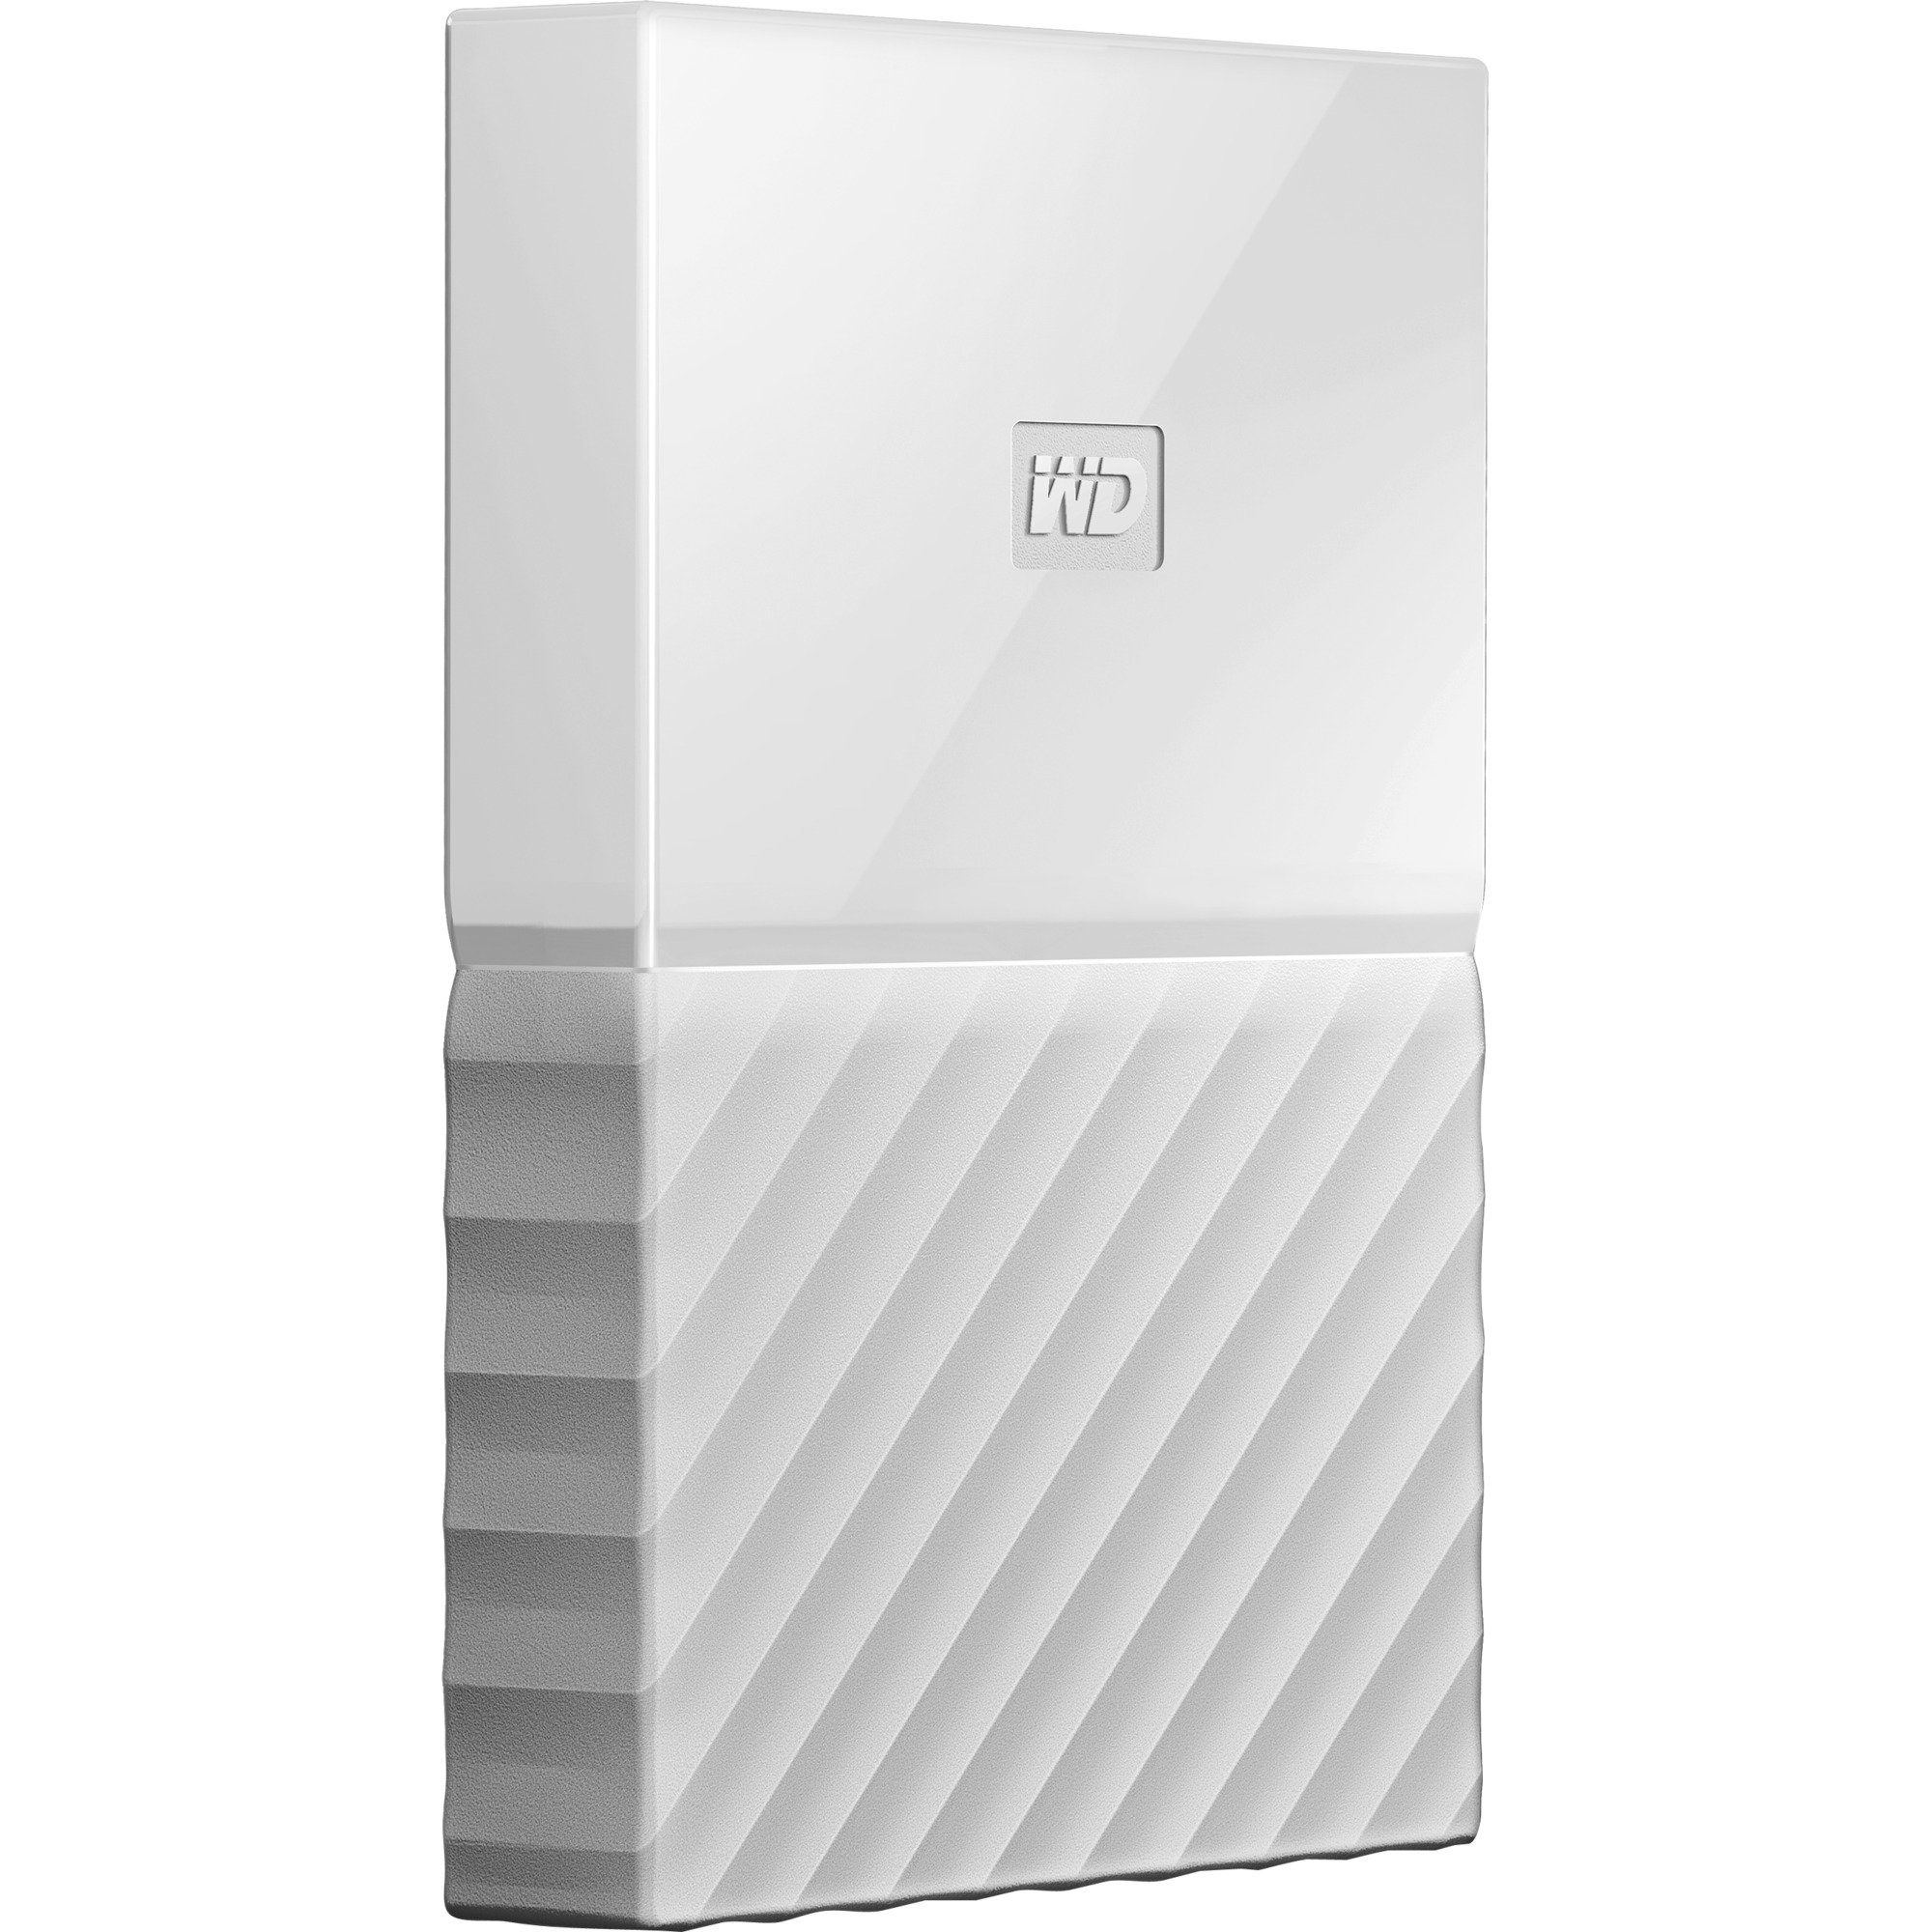 Western Digital Festplatte »My Passport 1 TB«